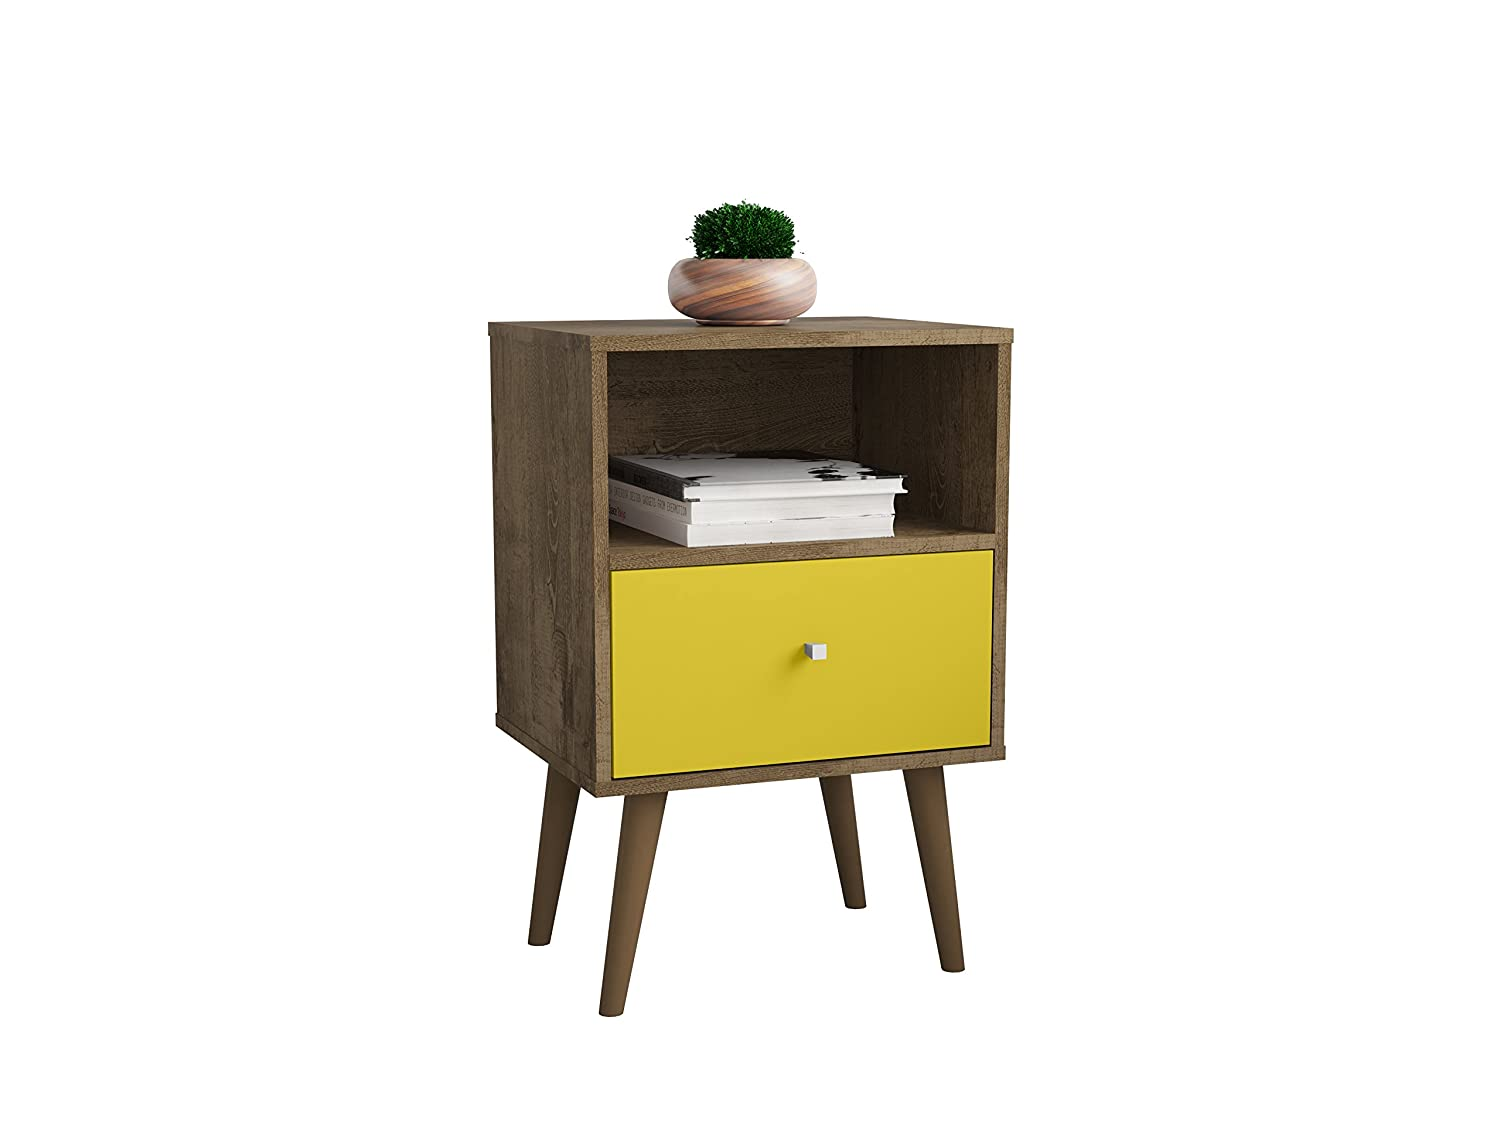 Rustic Brown Yellow Manhattan Comfort 203AMC94 Liberty Modern 1 Drawer Bedroom Nightstand End Table, Rustic Brown Yellow